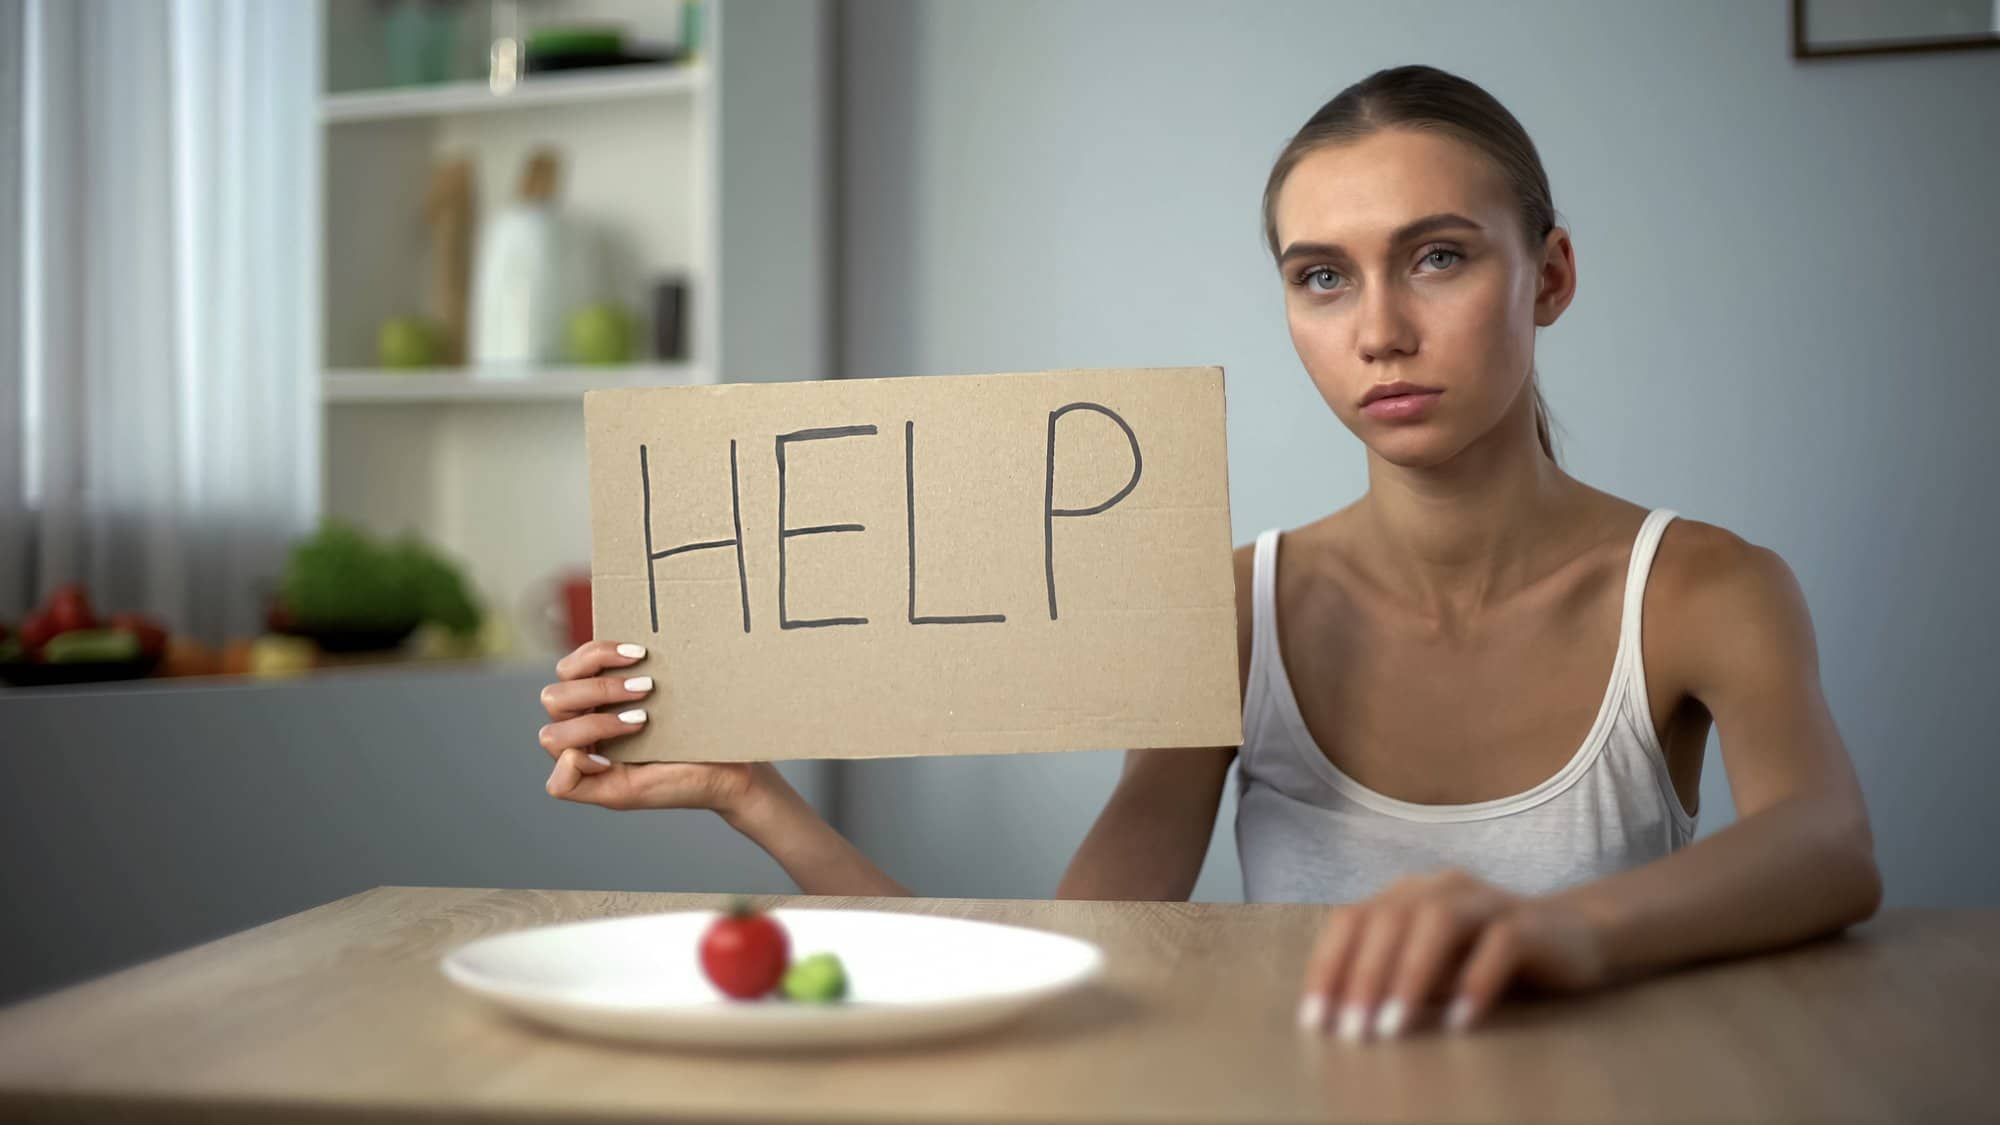 How to Choose Between Eating Disorder Treatment Centers